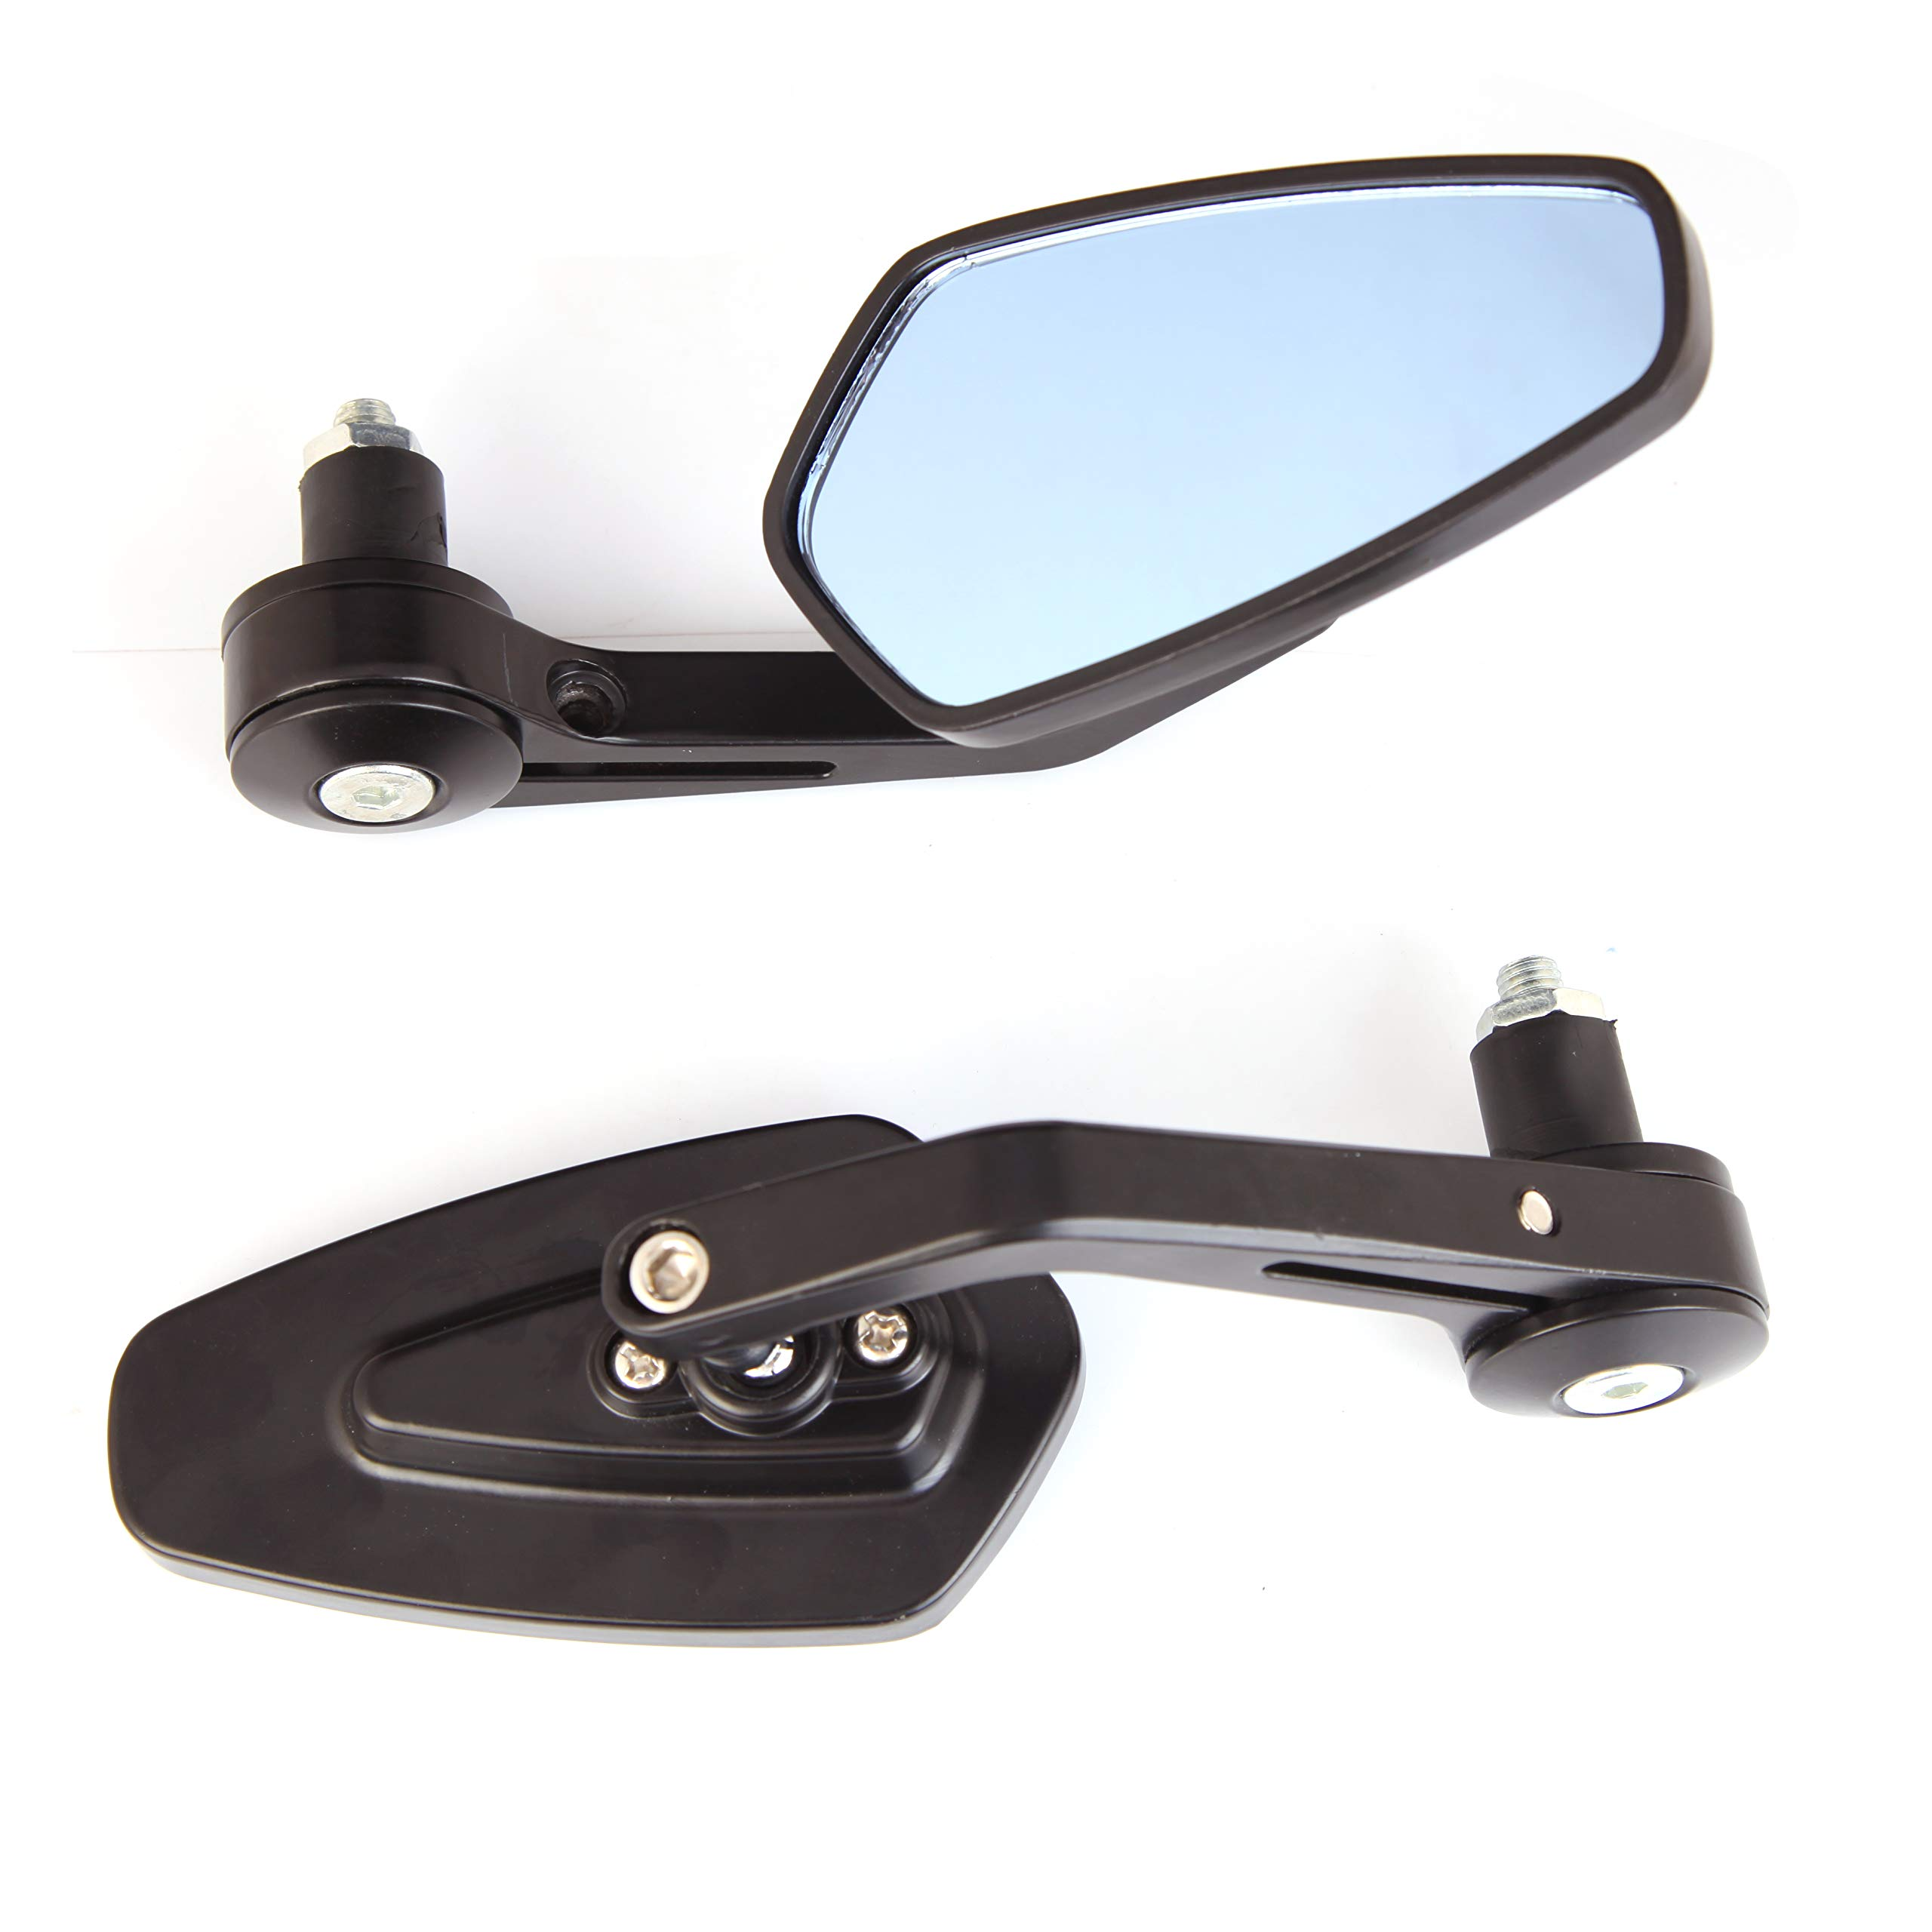 Krator SF-M09N53 7//8 Bar End Suzuki Honda Kawasaki Ducati Black Rear View Mirror Set